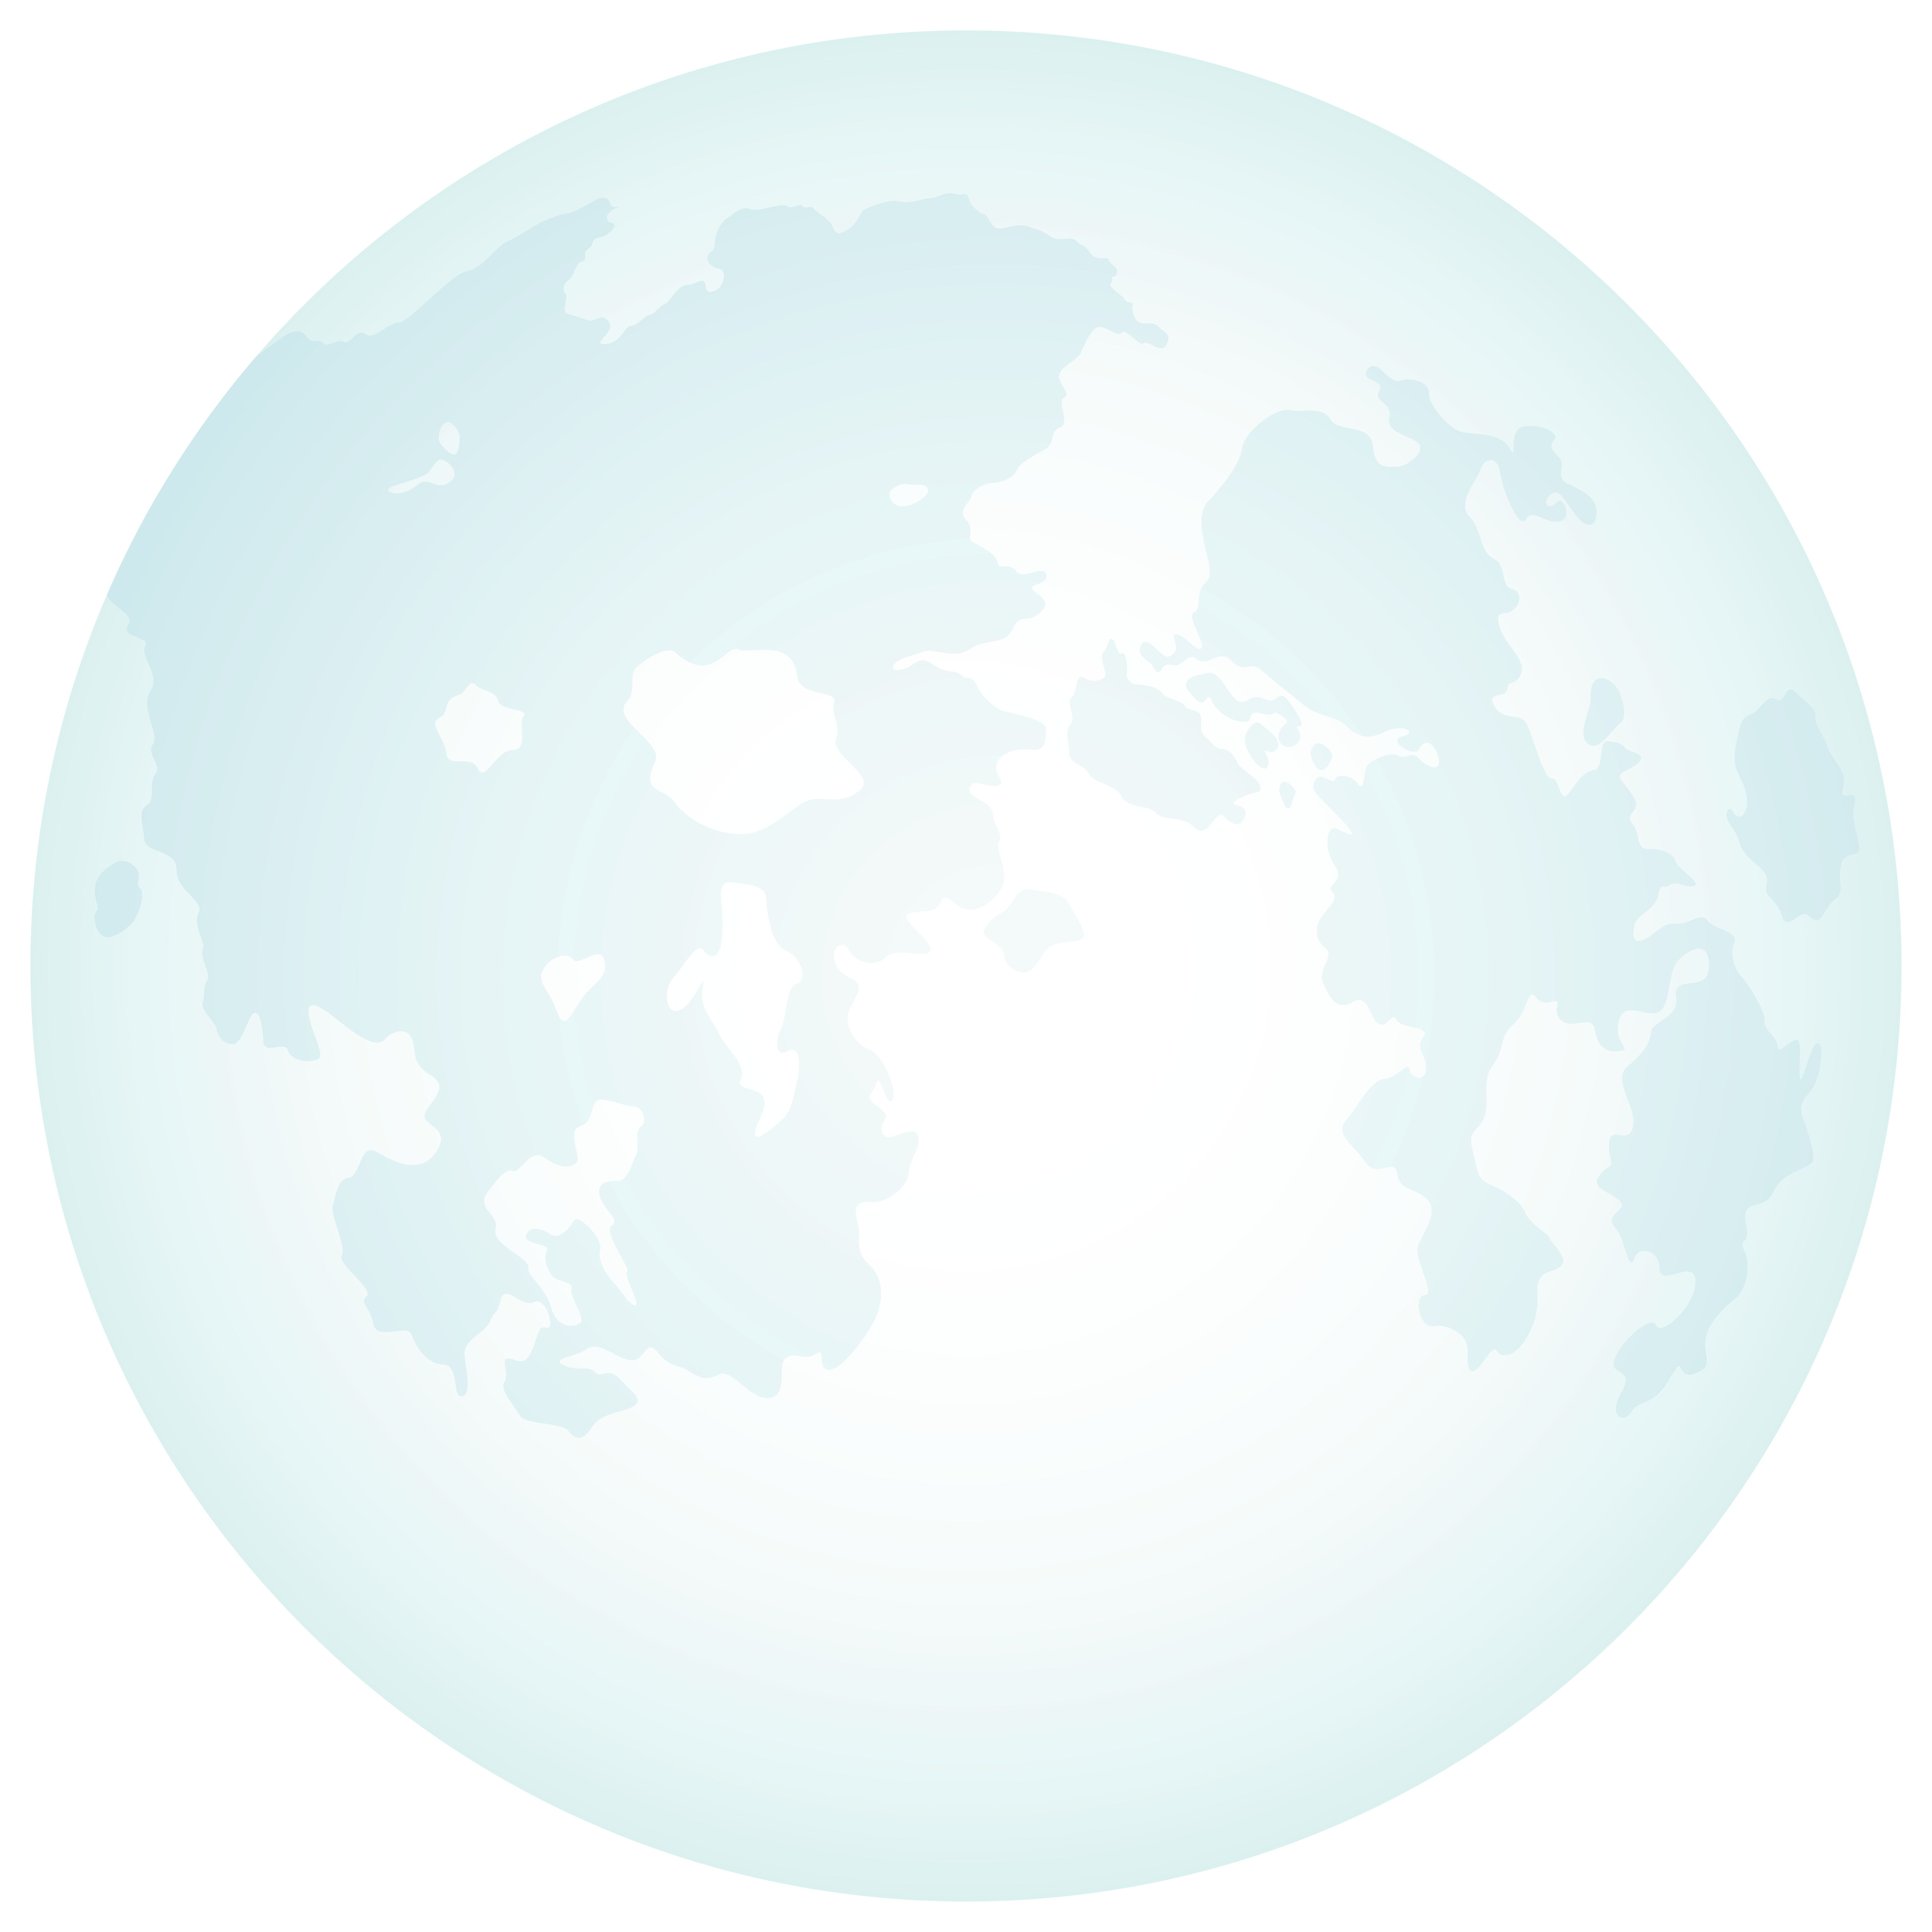 Moon png images. Clipart image gallery yopriceville